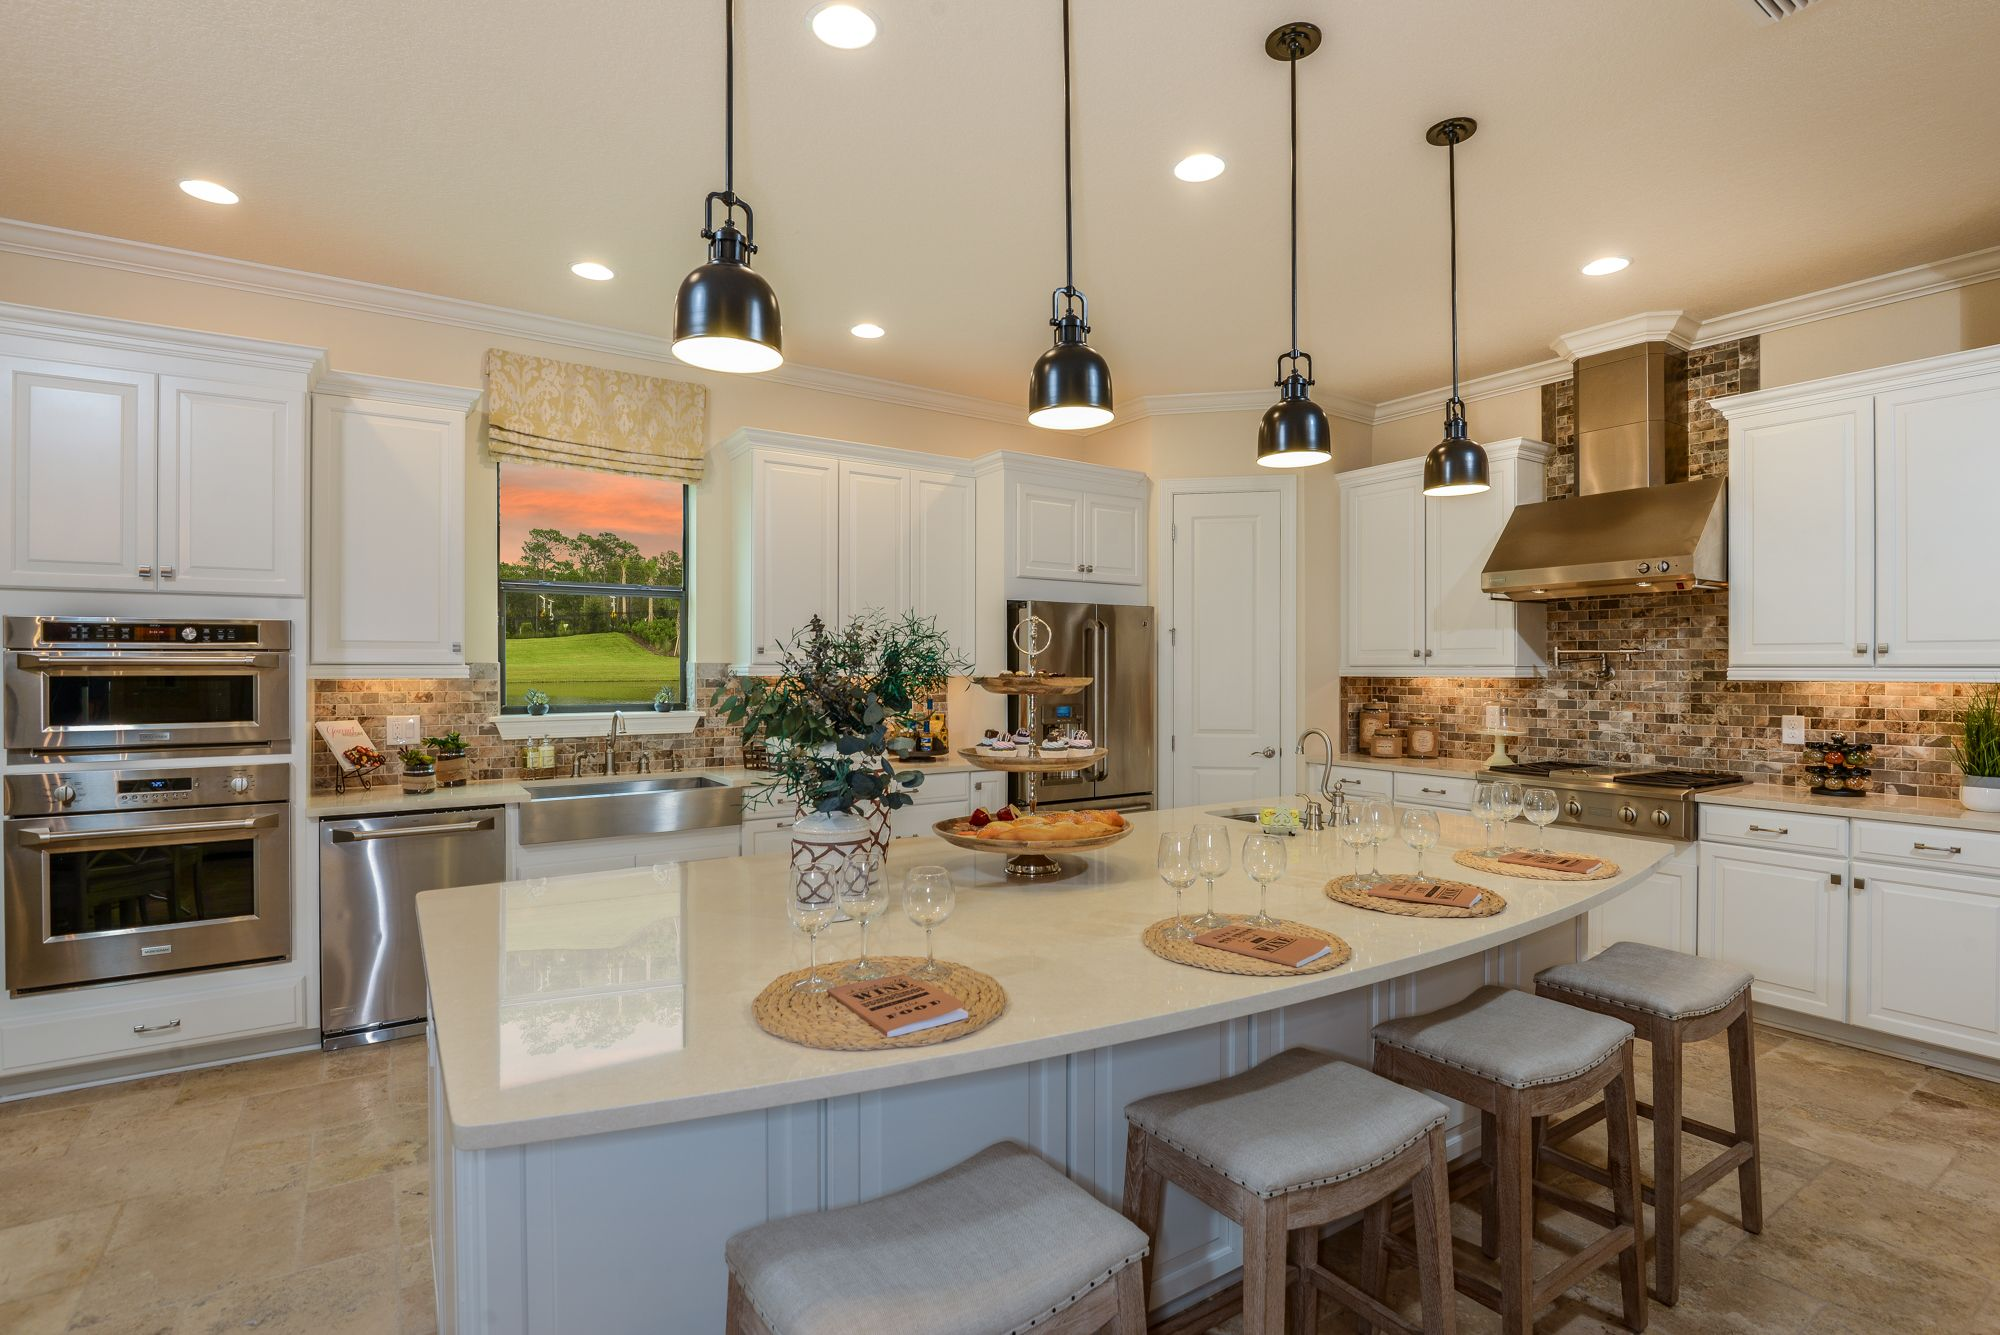 Find Your Dreamhome At Esplanade Of Tampa Kitchen Tamparealestate Newhome Househunting New Homes Home Tampa Real Estate